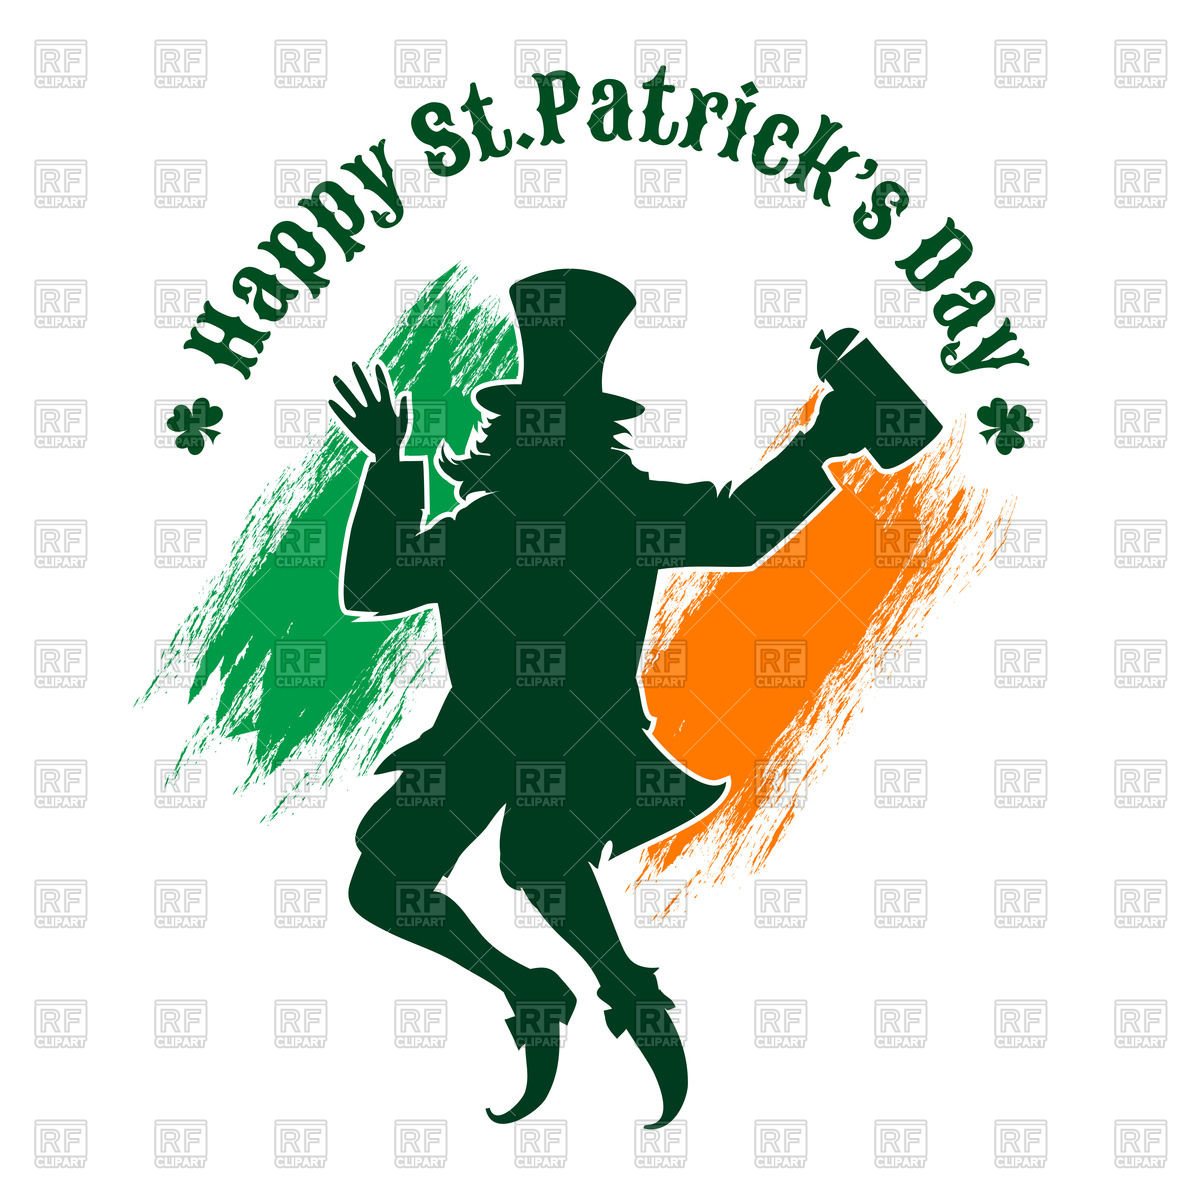 1200x1200 St. Patrick's Day Poster With Silhouette Of Joyful Leprechaun